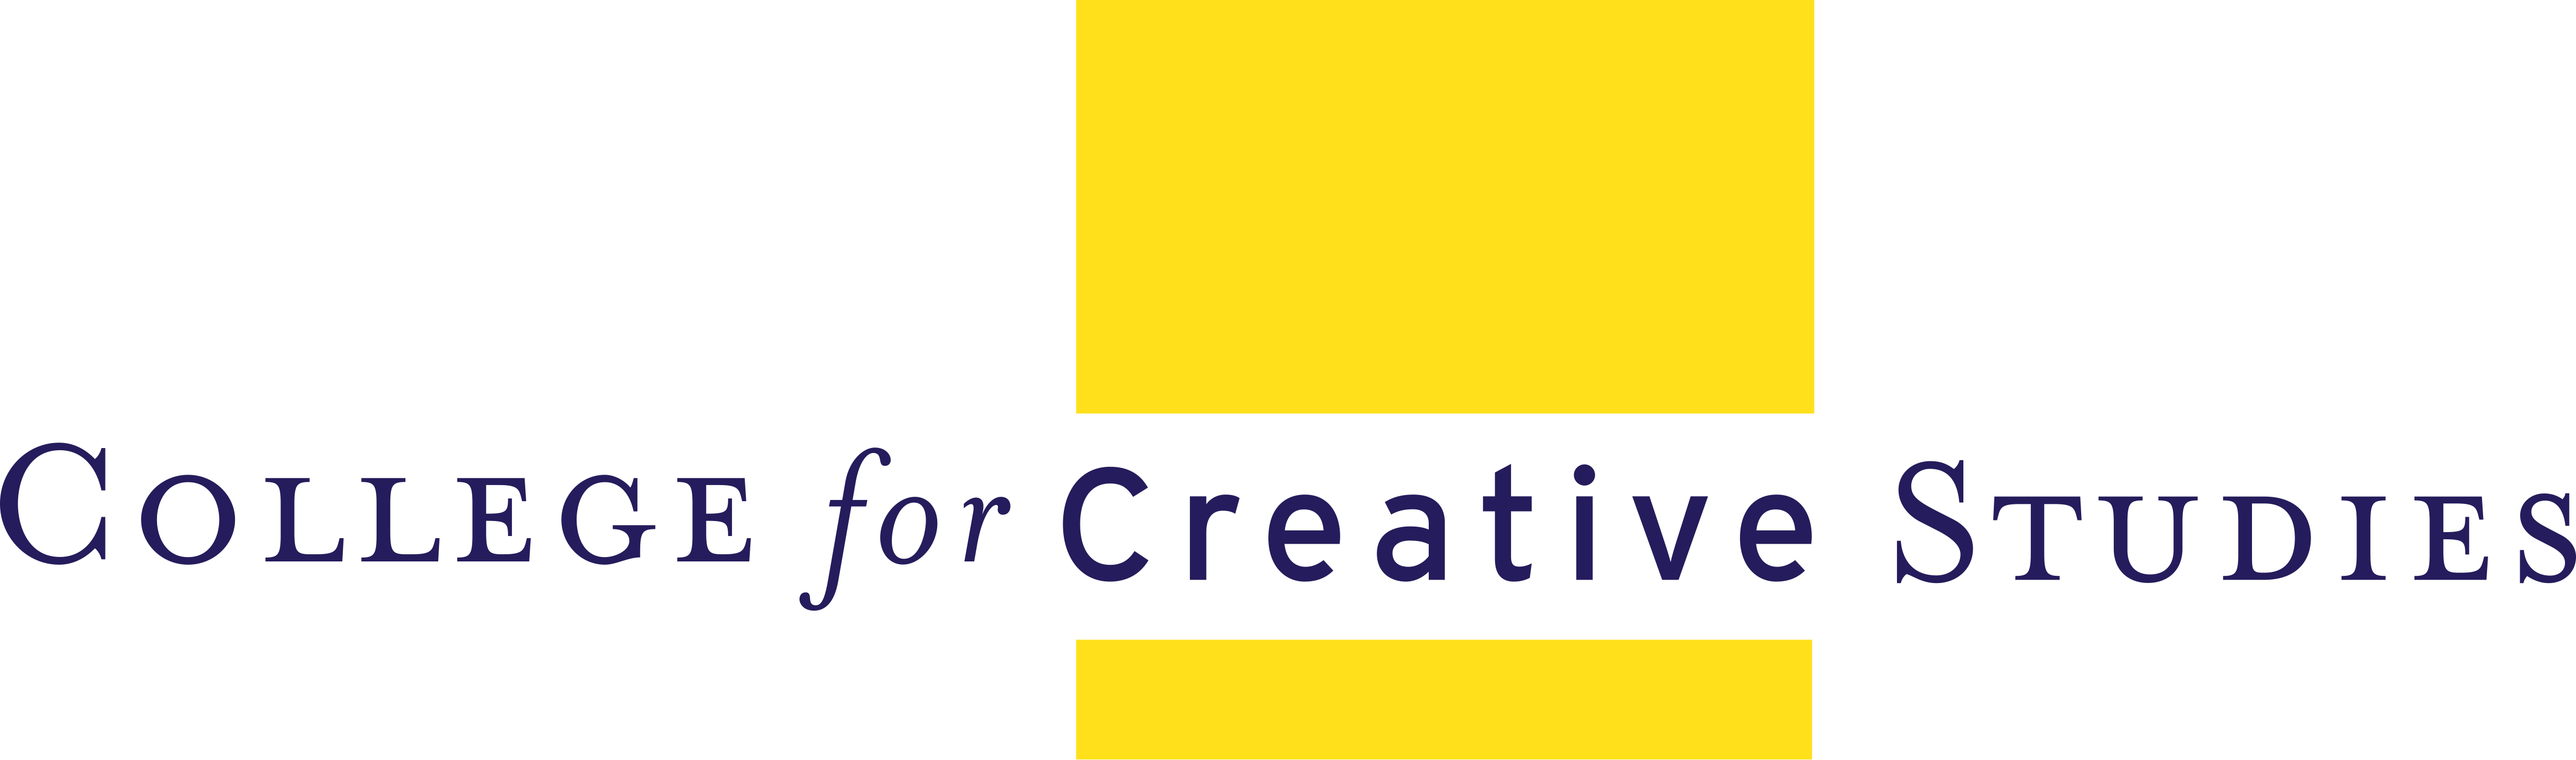 College for Creative Studies - LINE旅遊